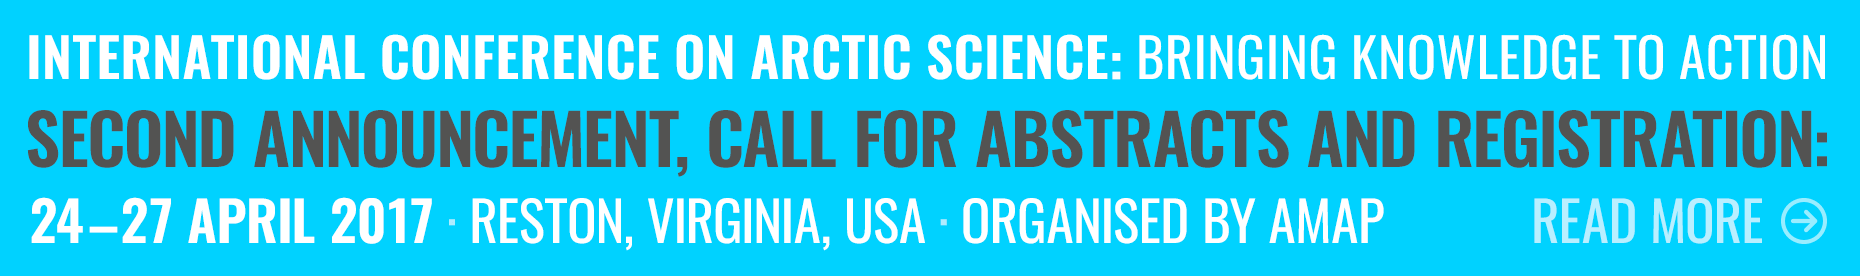 International Conference on Arctic Science: Bringing knowledge to action. 2nd announcemennt, call for abstracts and registration